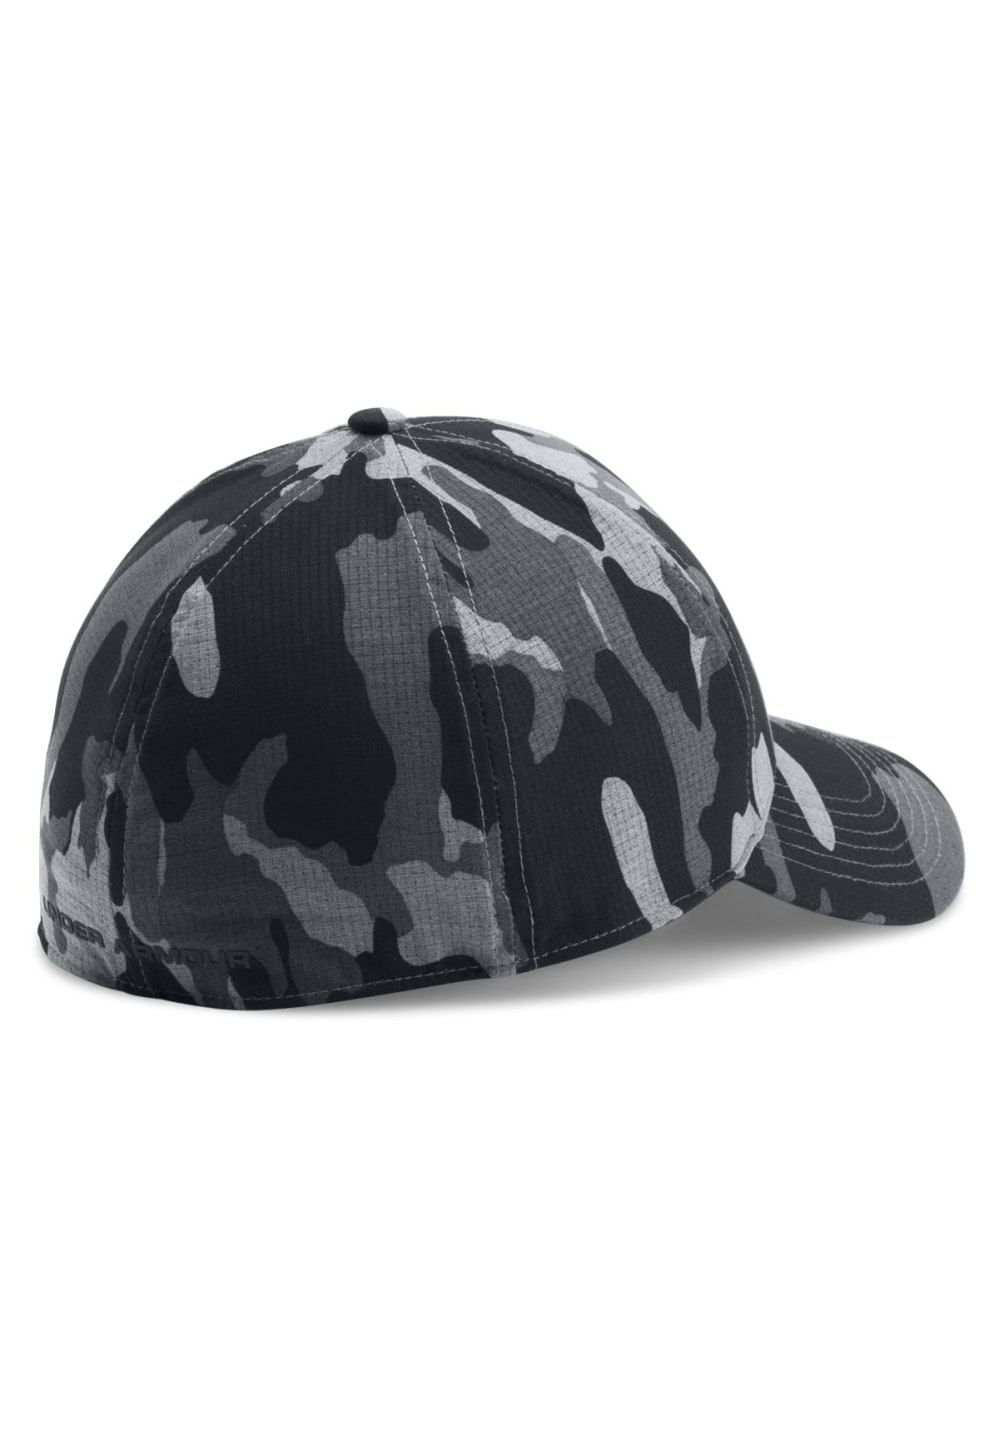 0fedfe876bc ... Under Armour Airvent Core Cap - Headdress for Men - Black. Back to  Overview. 1  2. Previous